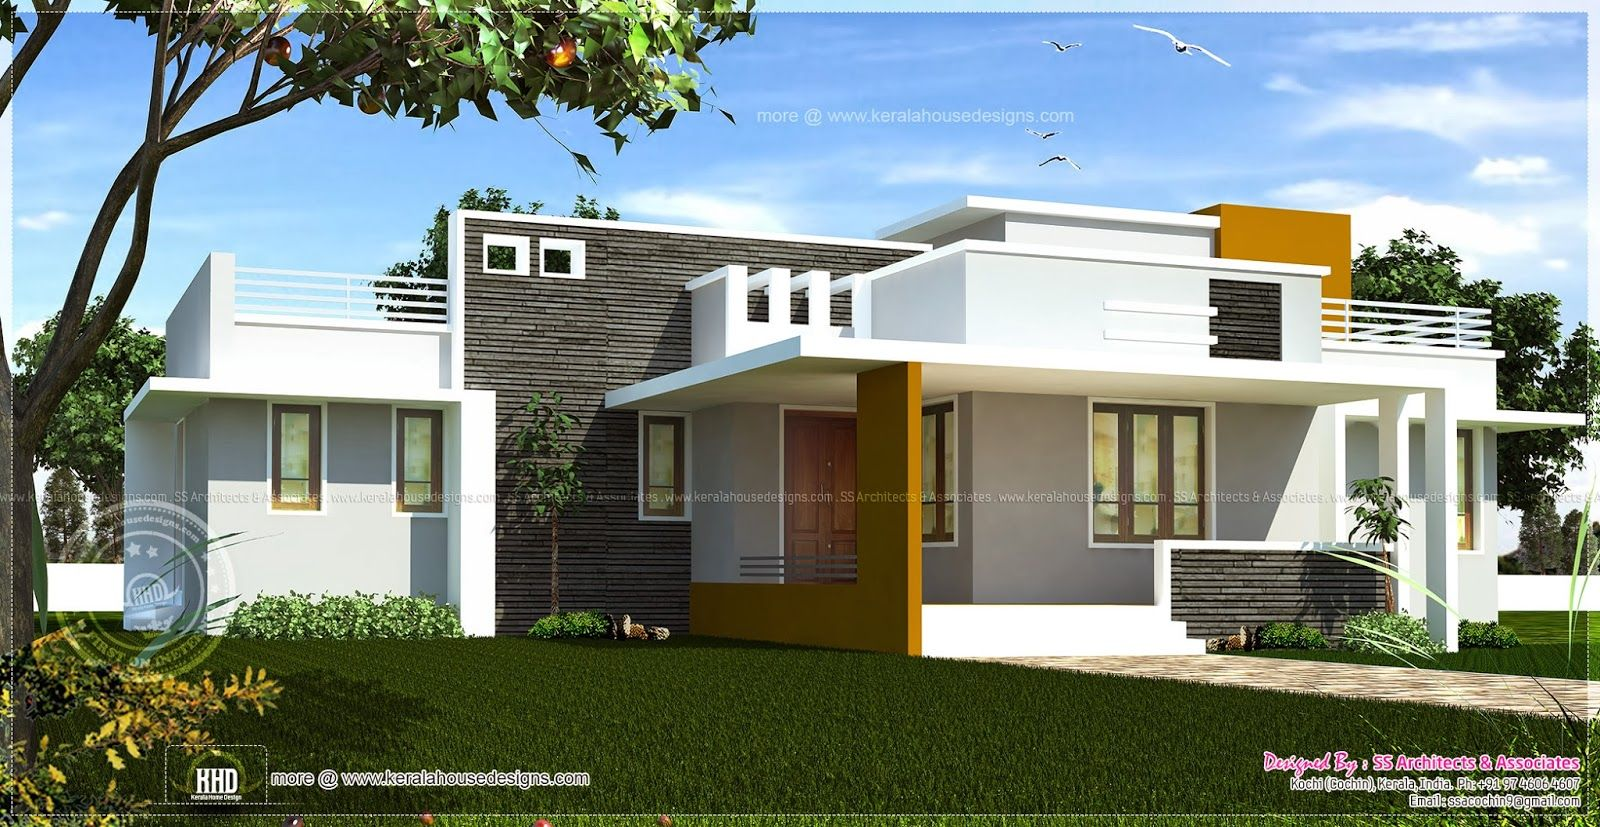 Excellent single home designs single floor contemporary for Modern house design single story